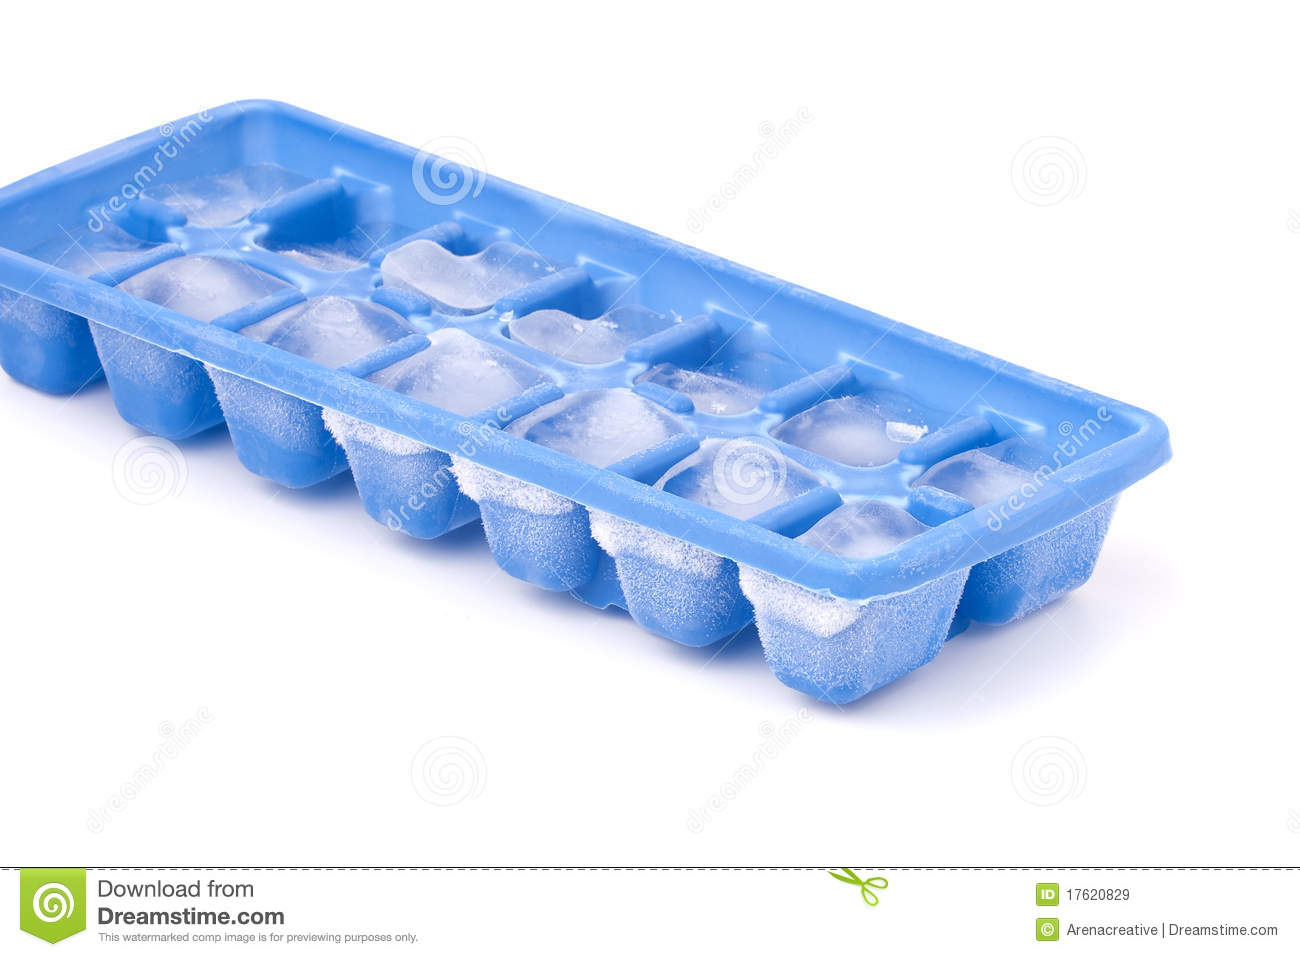 Blue Plastic Ice Cube Tray With Frost On It Isolated Over A White